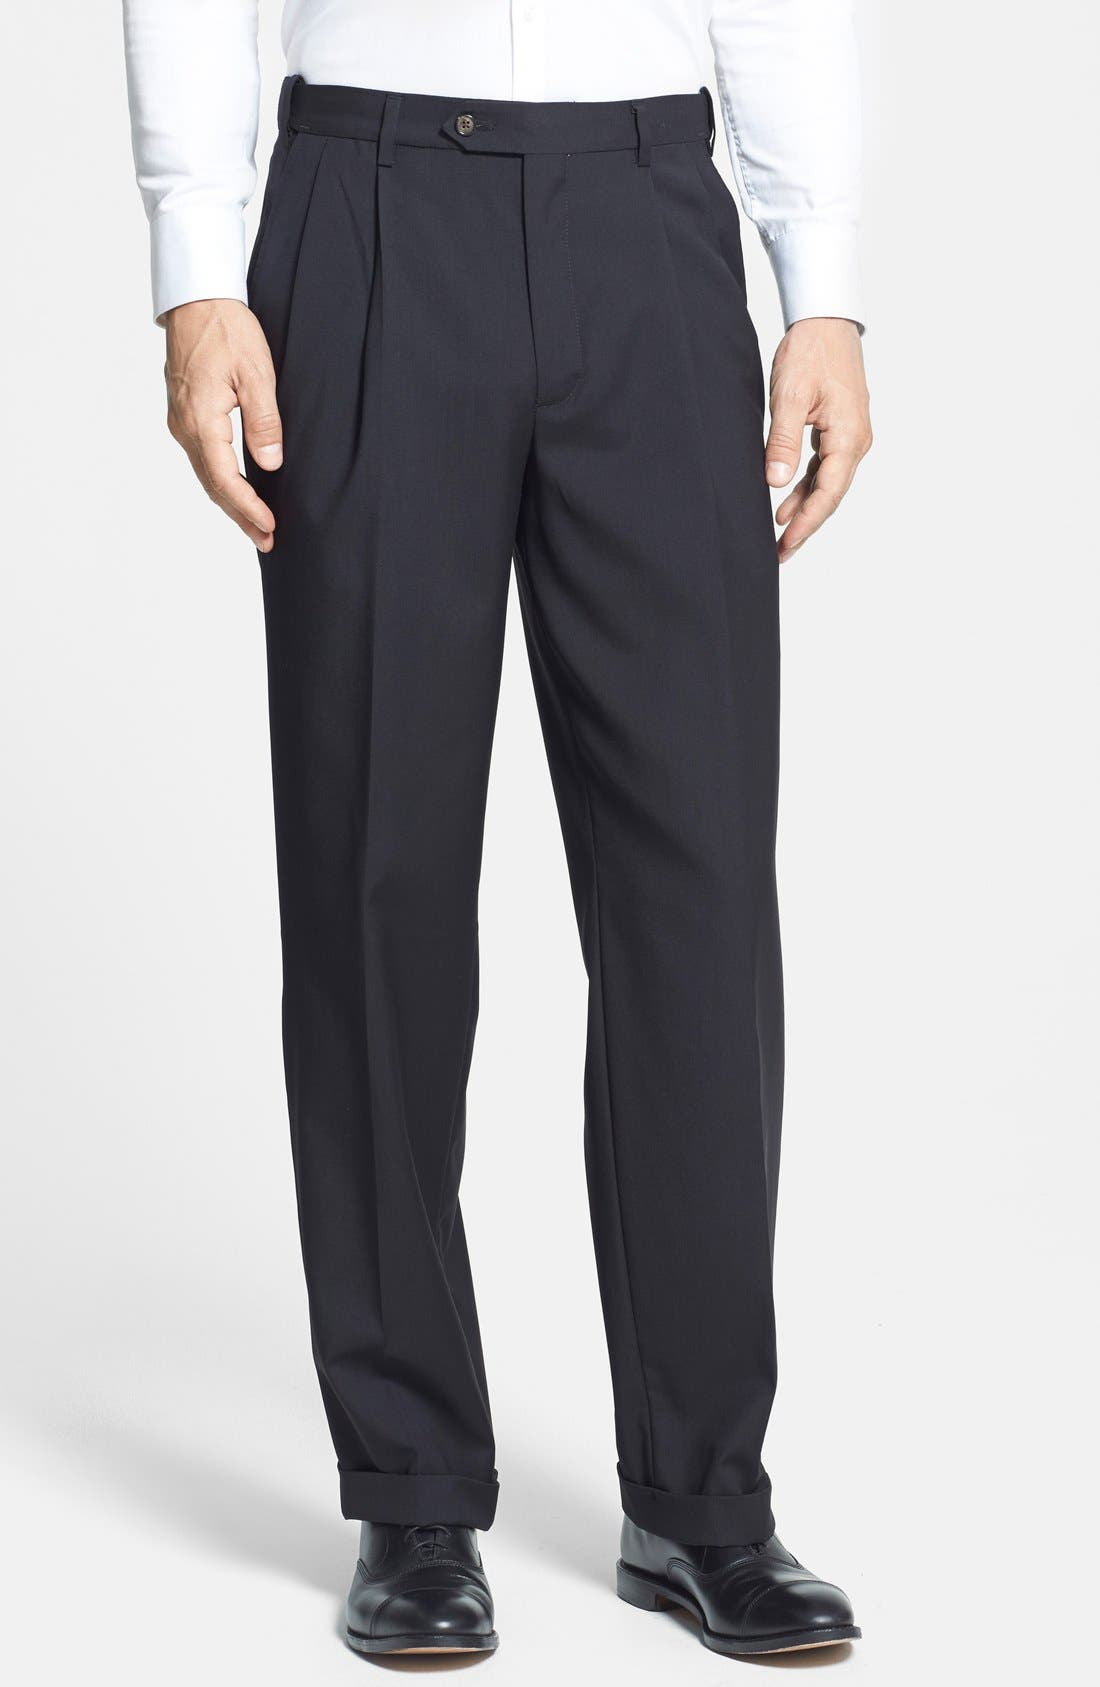 Self Sizer Waist Pleated Trousers,                         Main,                         color, Black